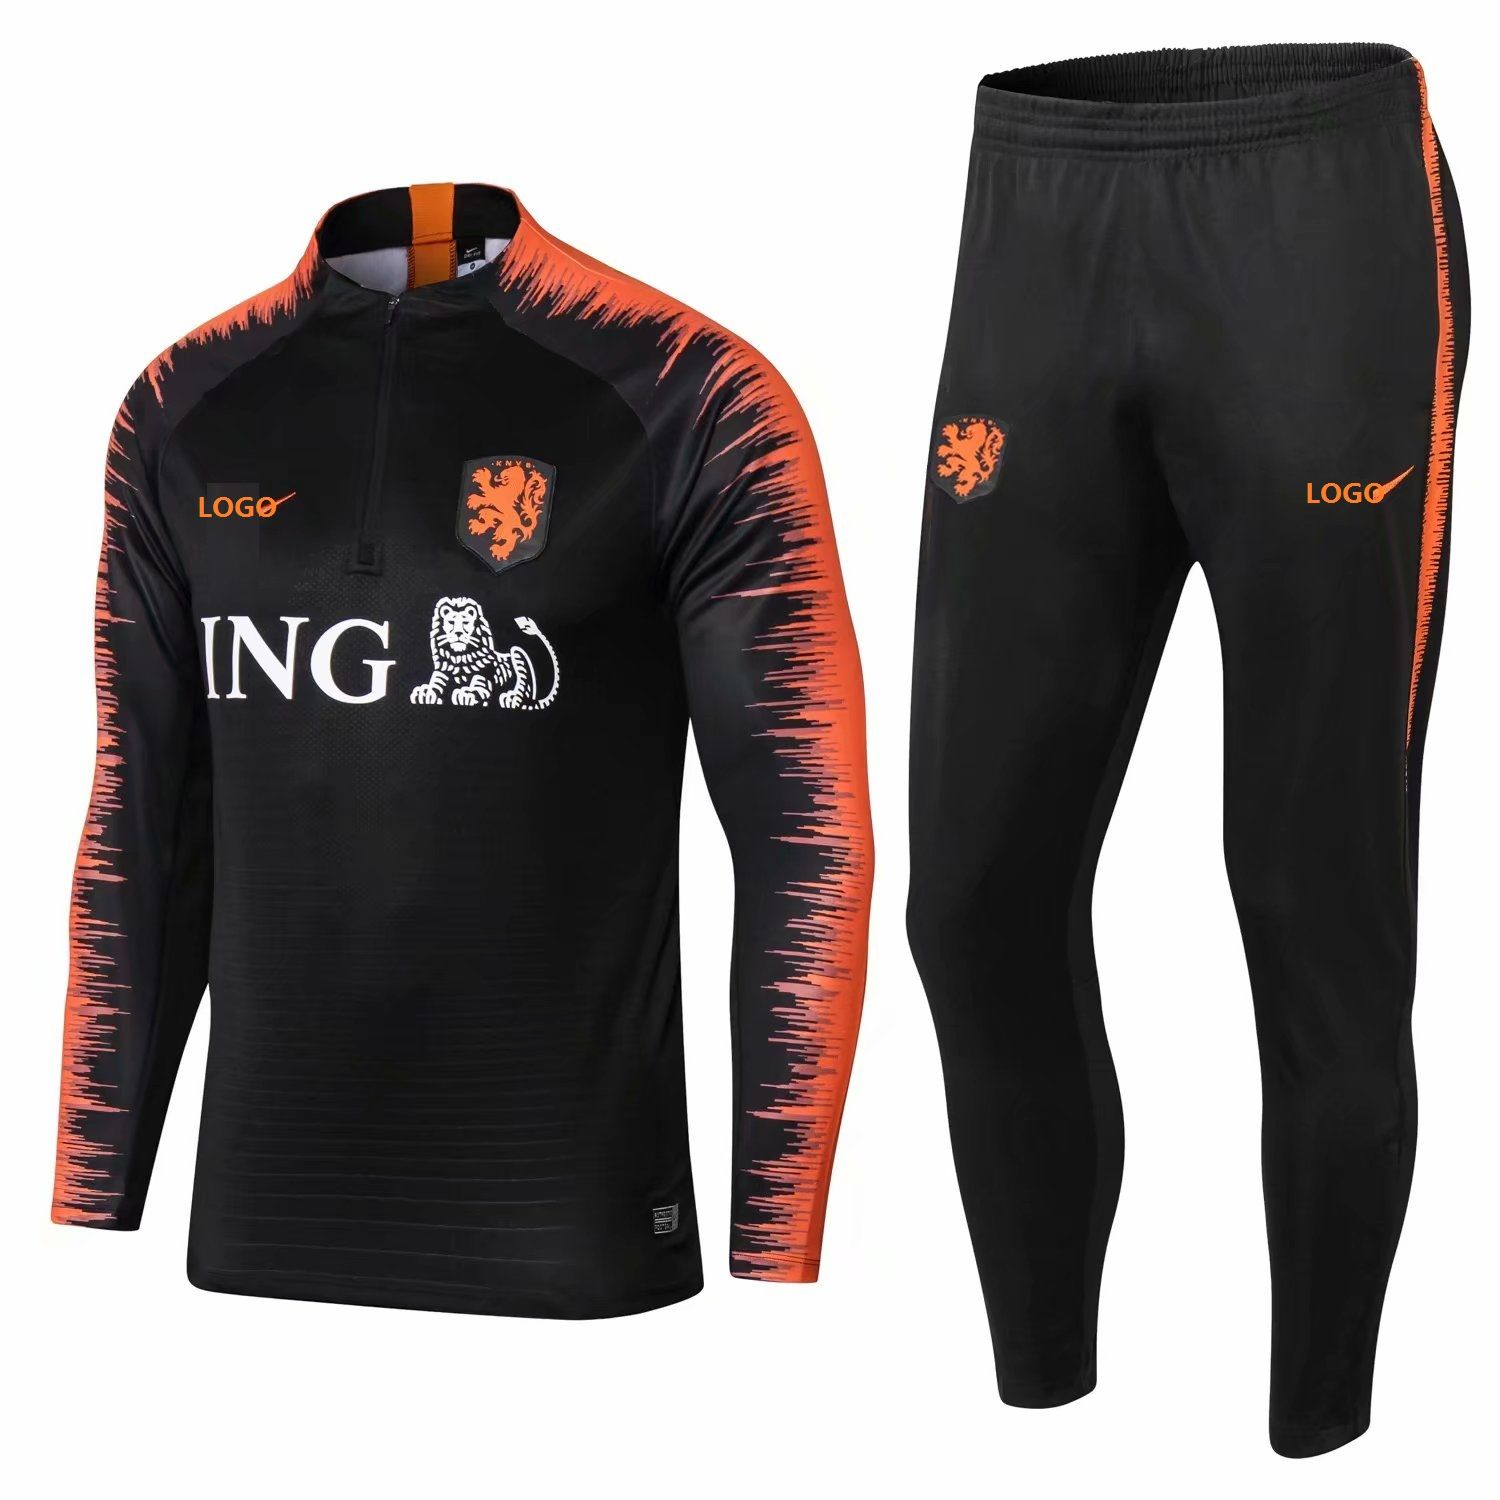 2018 2019 Men Black   Orange New Set Football Tracking Netherlands  Tracksuits e4e9ea9b71957